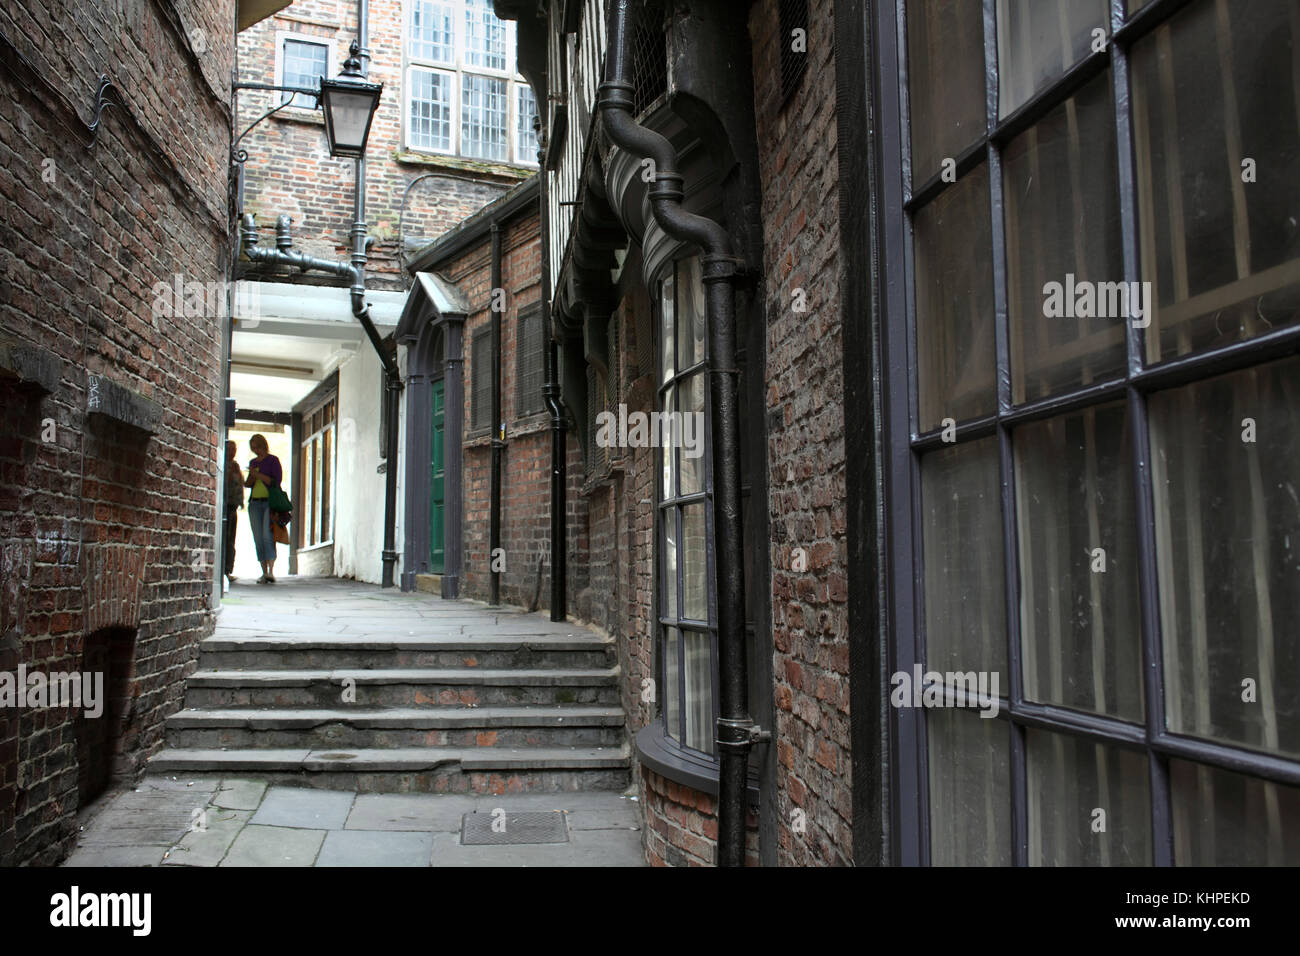 Lady Peckett's Yard, one of many narrow back alleys that thread their way through the city centre of York. - Stock Image